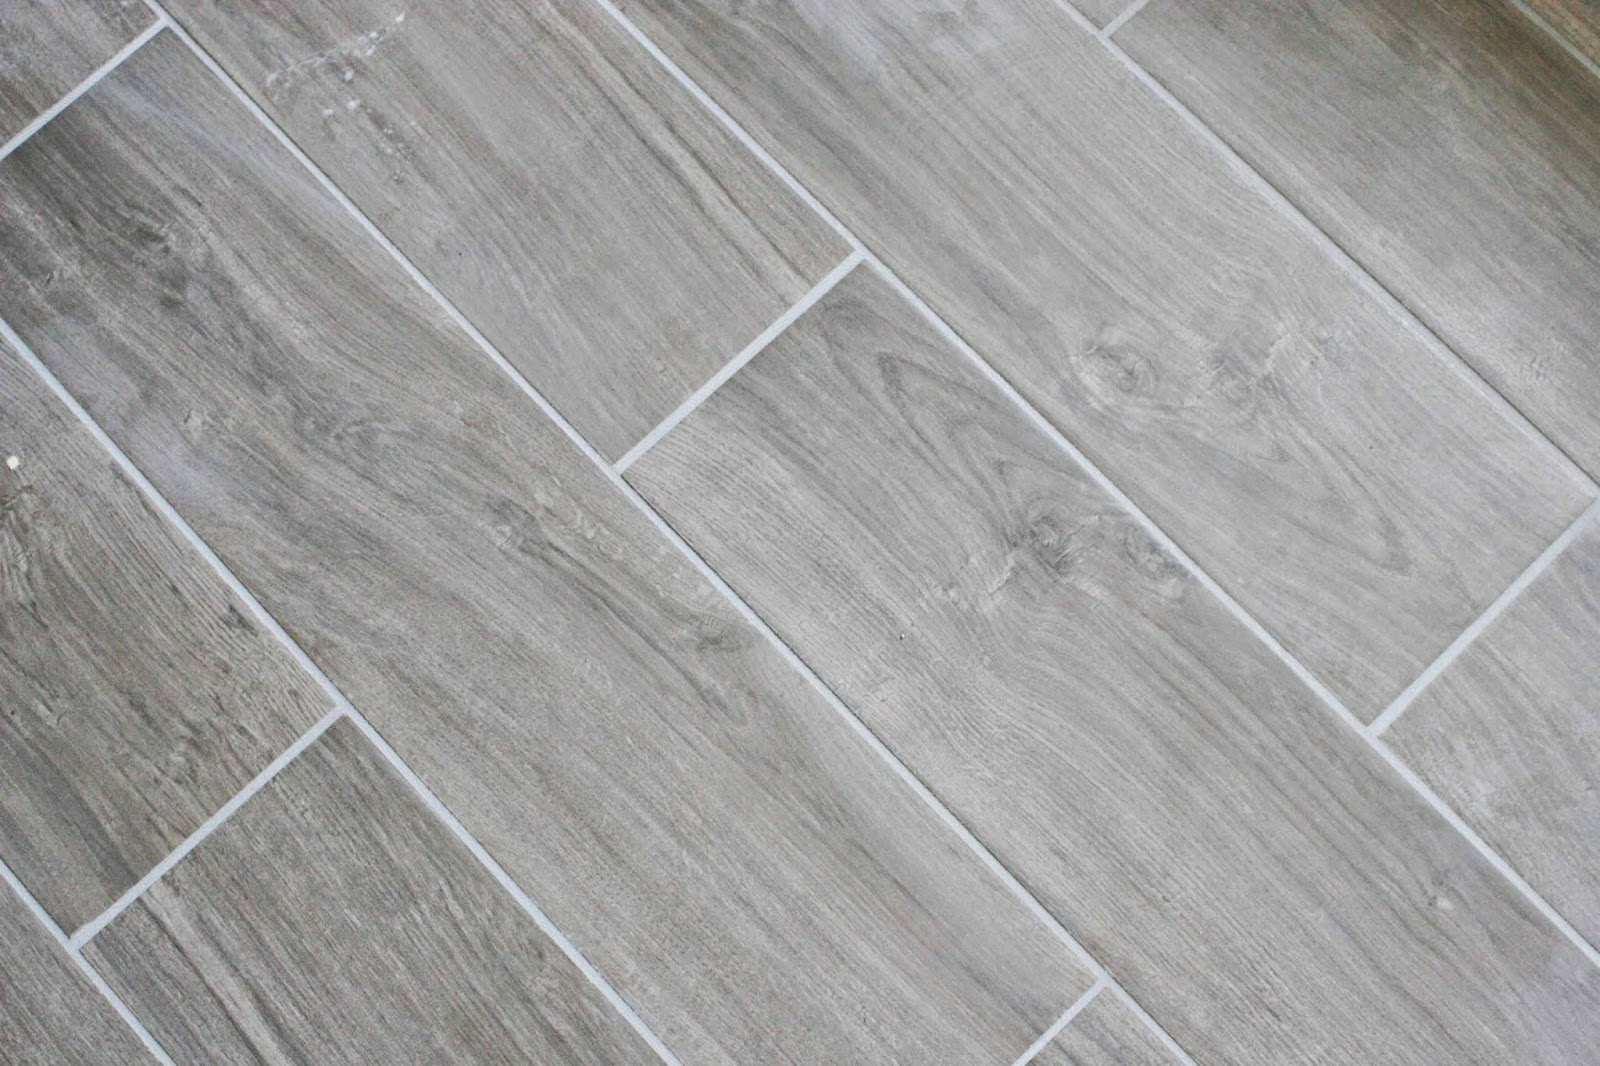 Craftivity designs bathroom renovation tile Tile wood floor